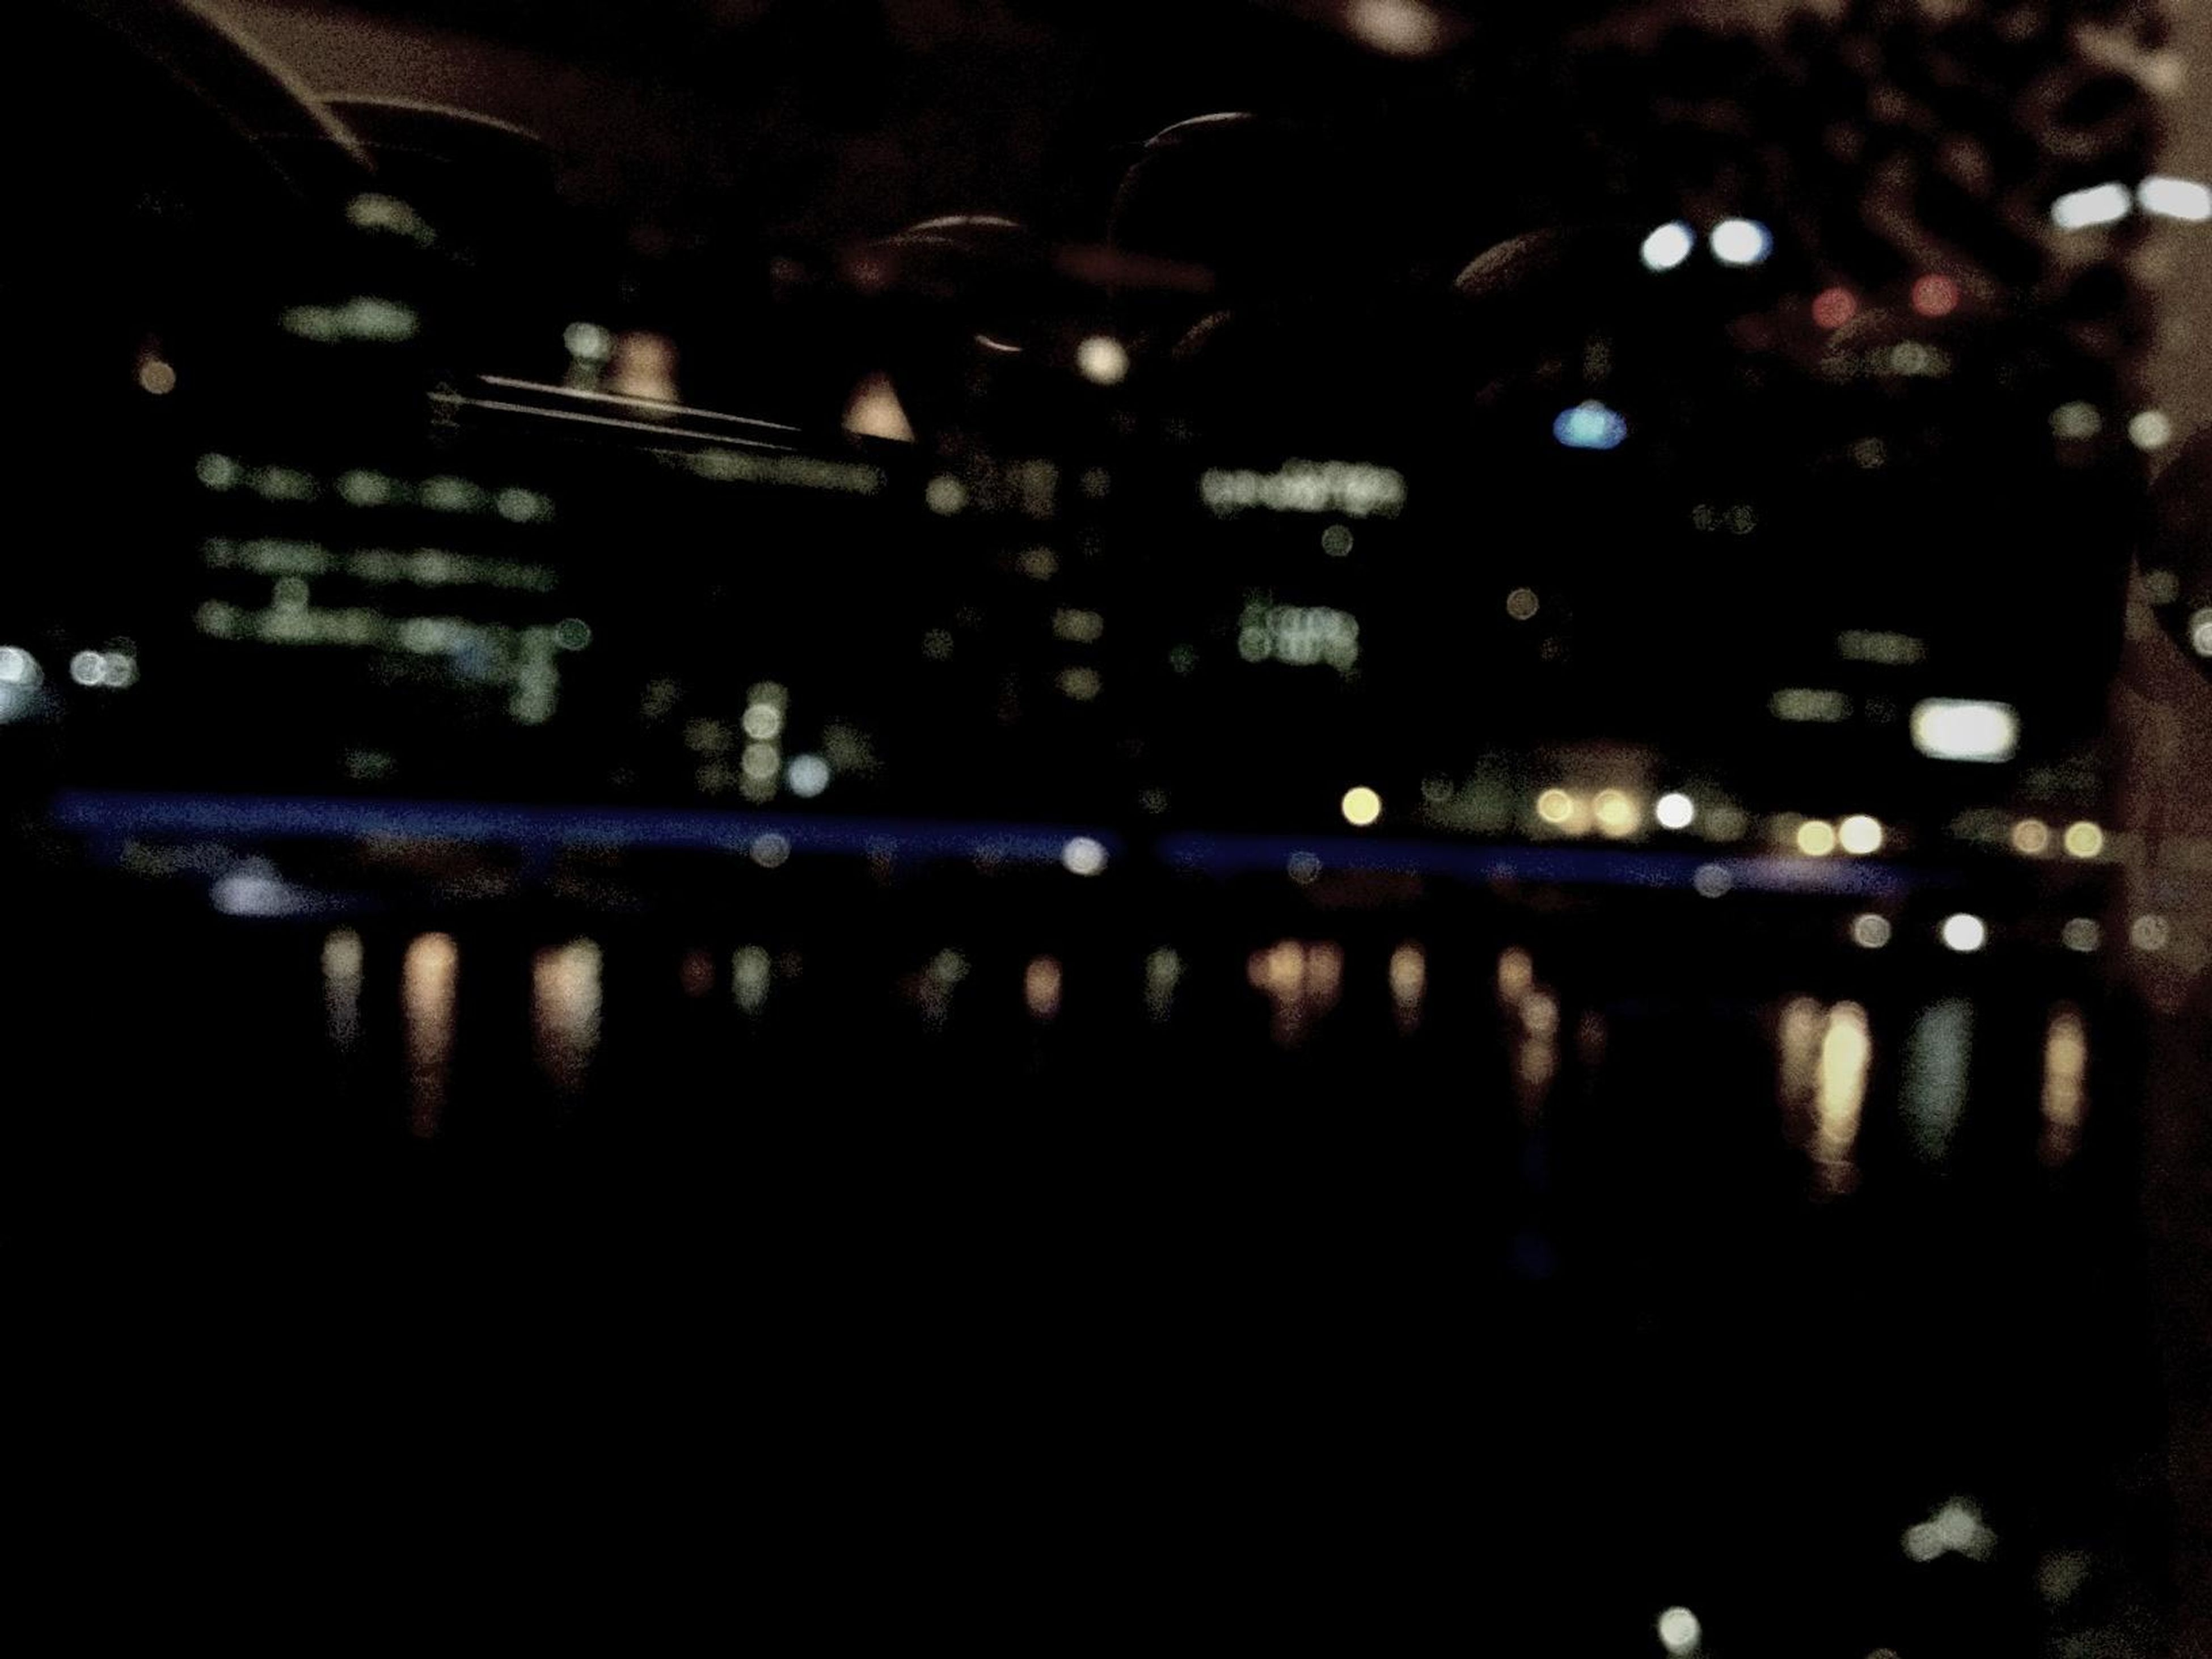 water, night, illuminated, reflection, river, transportation, waterfront, focus on foreground, outdoors, built structure, building exterior, architecture, no people, dark, nautical vessel, mode of transport, lake, city, close-up, nature